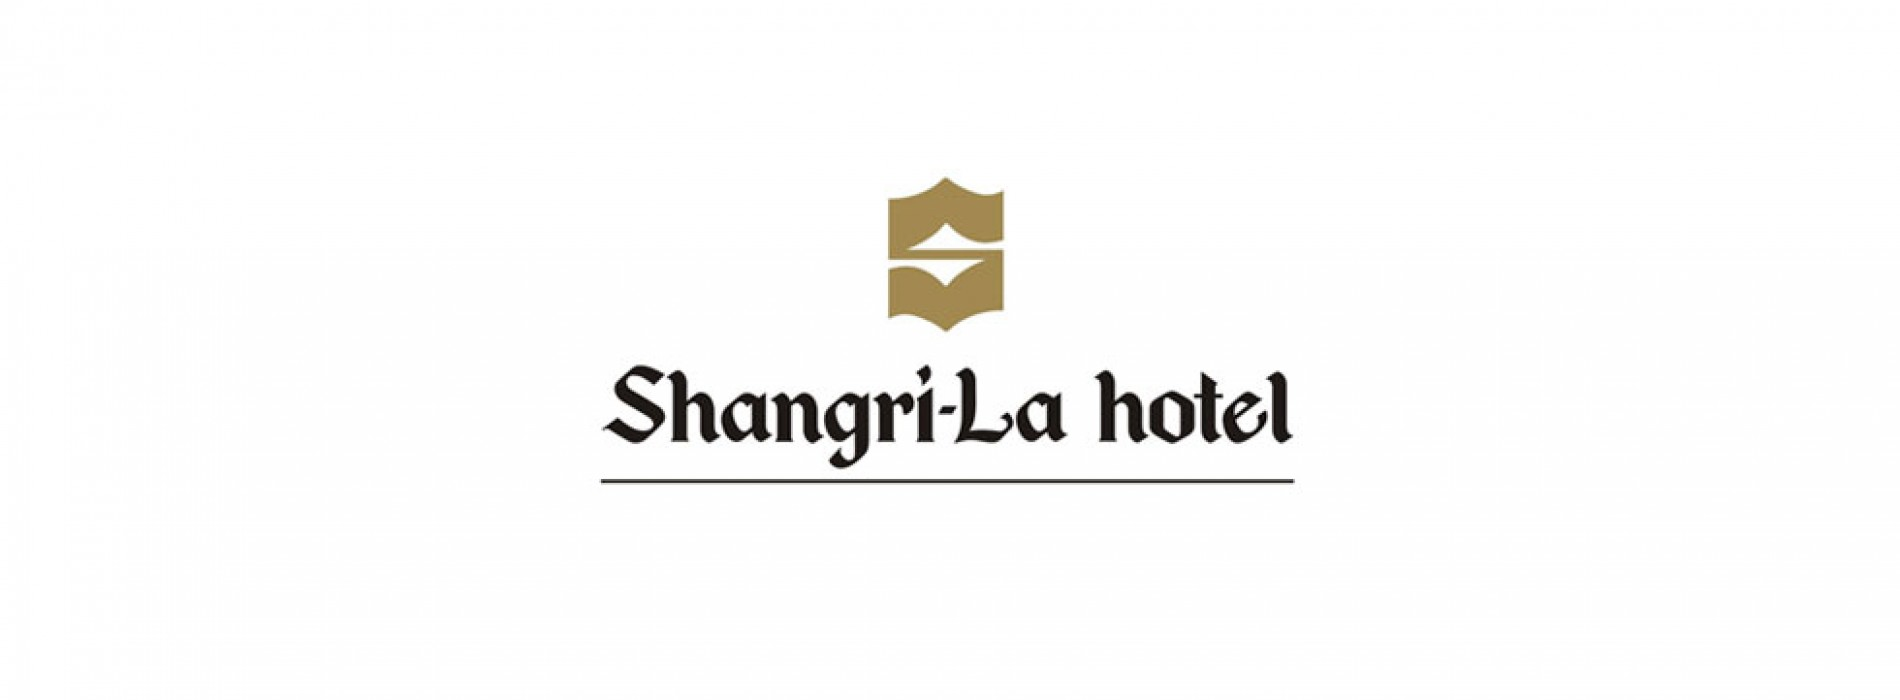 Shangri La Hotel Bengaluru Receives Leed India New Construction